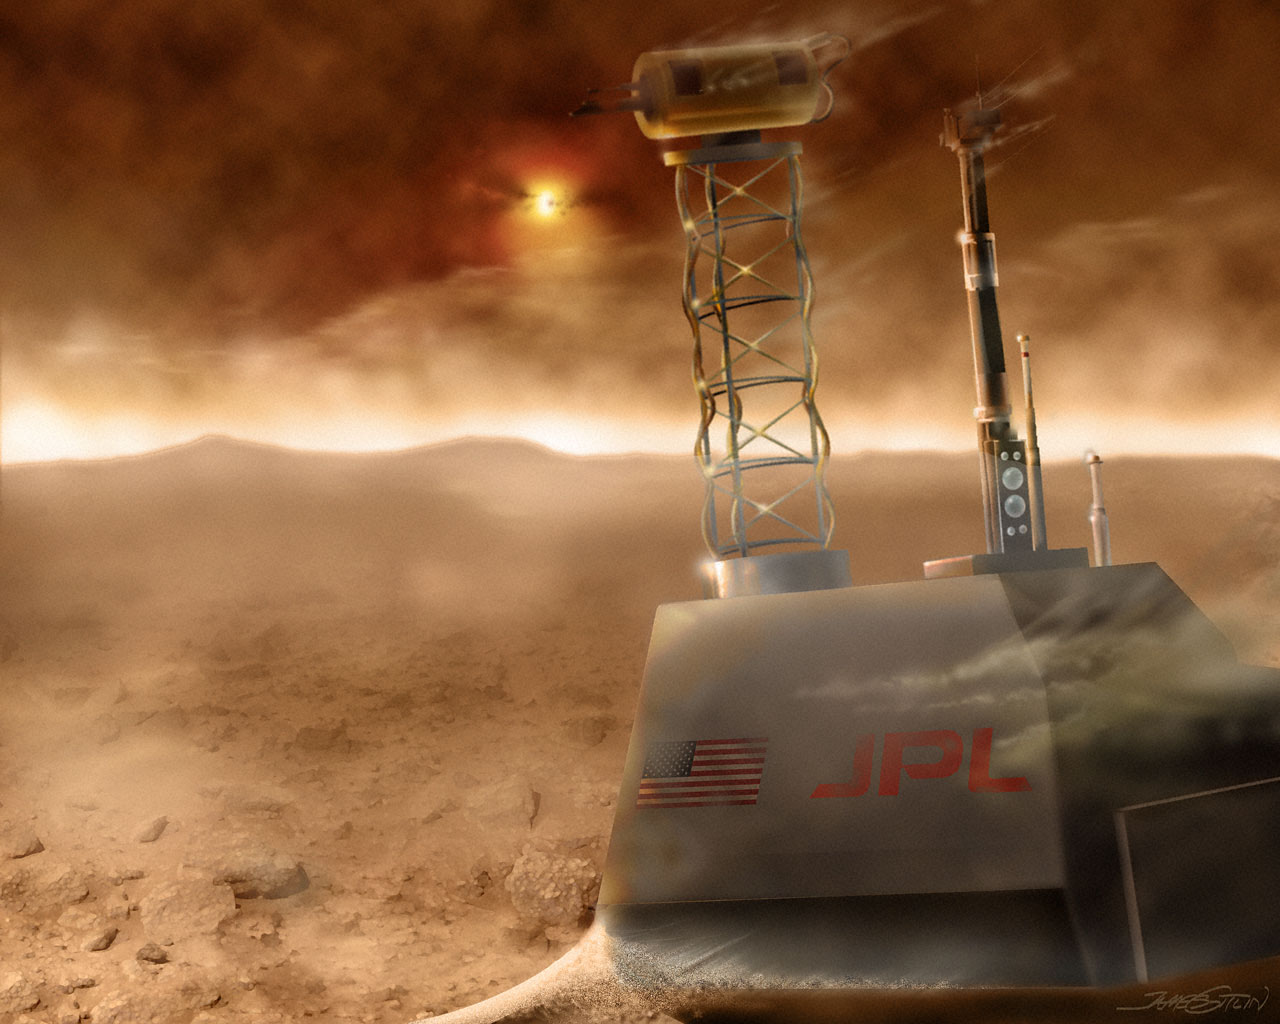 View of Martian Surface During Dust Storm (artist's impression)